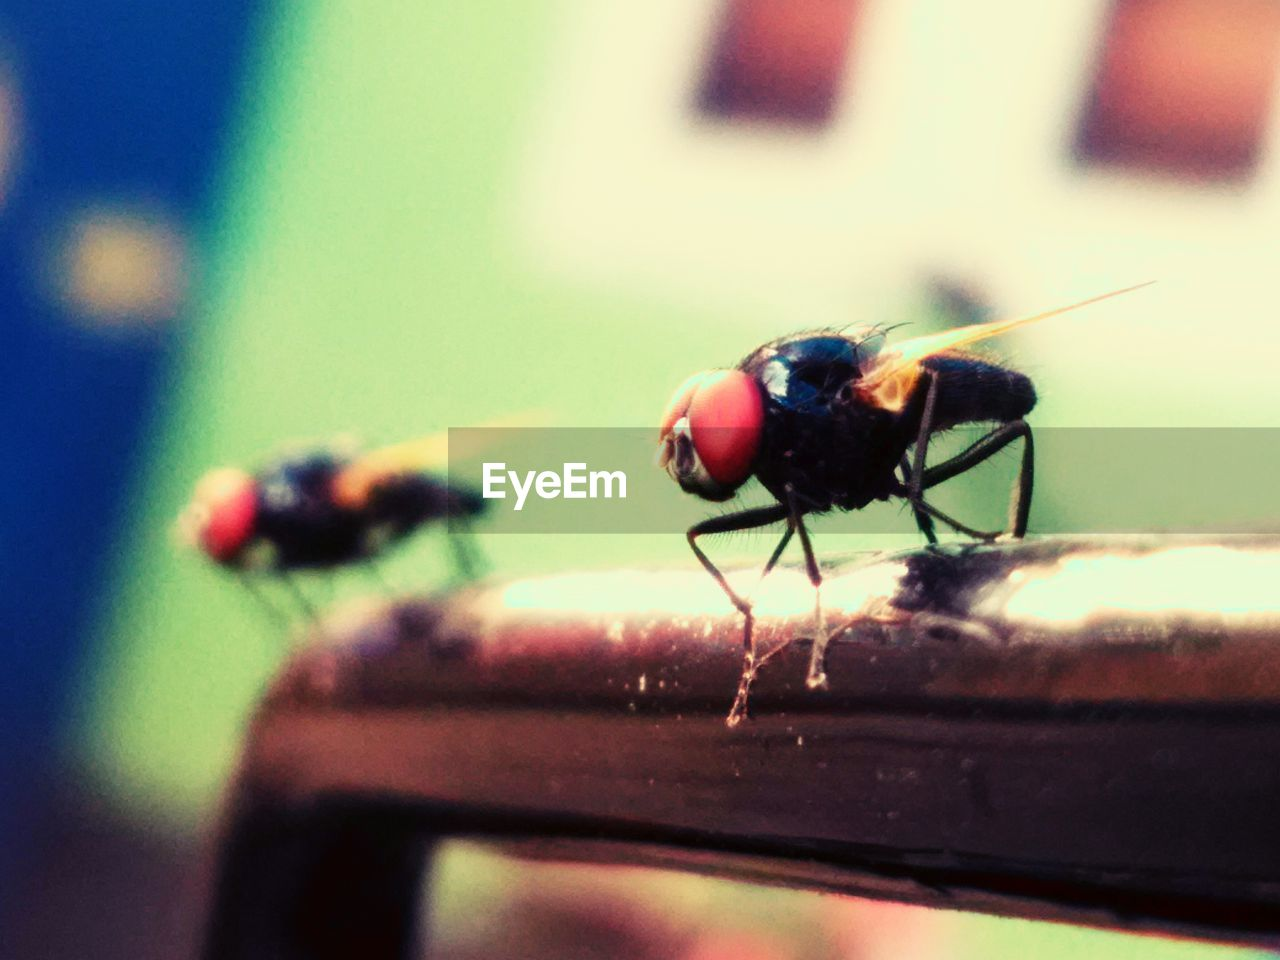 invertebrate, insect, animals in the wild, animal wildlife, animal themes, animal, close-up, one animal, selective focus, no people, fly, day, focus on foreground, animal wing, nature, housefly, zoology, ant, beetle, outdoors